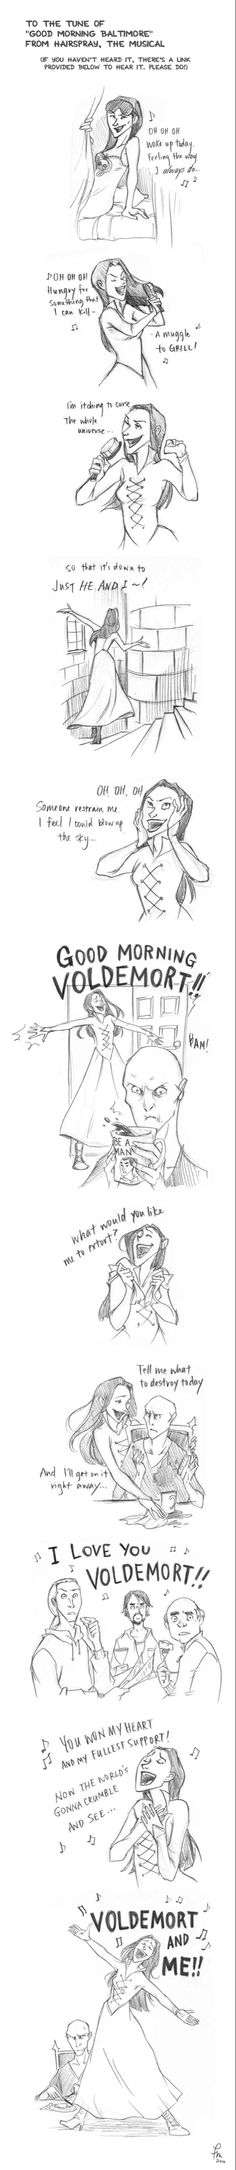 Good Morning Voldemort by flominowa on @DeviantArt